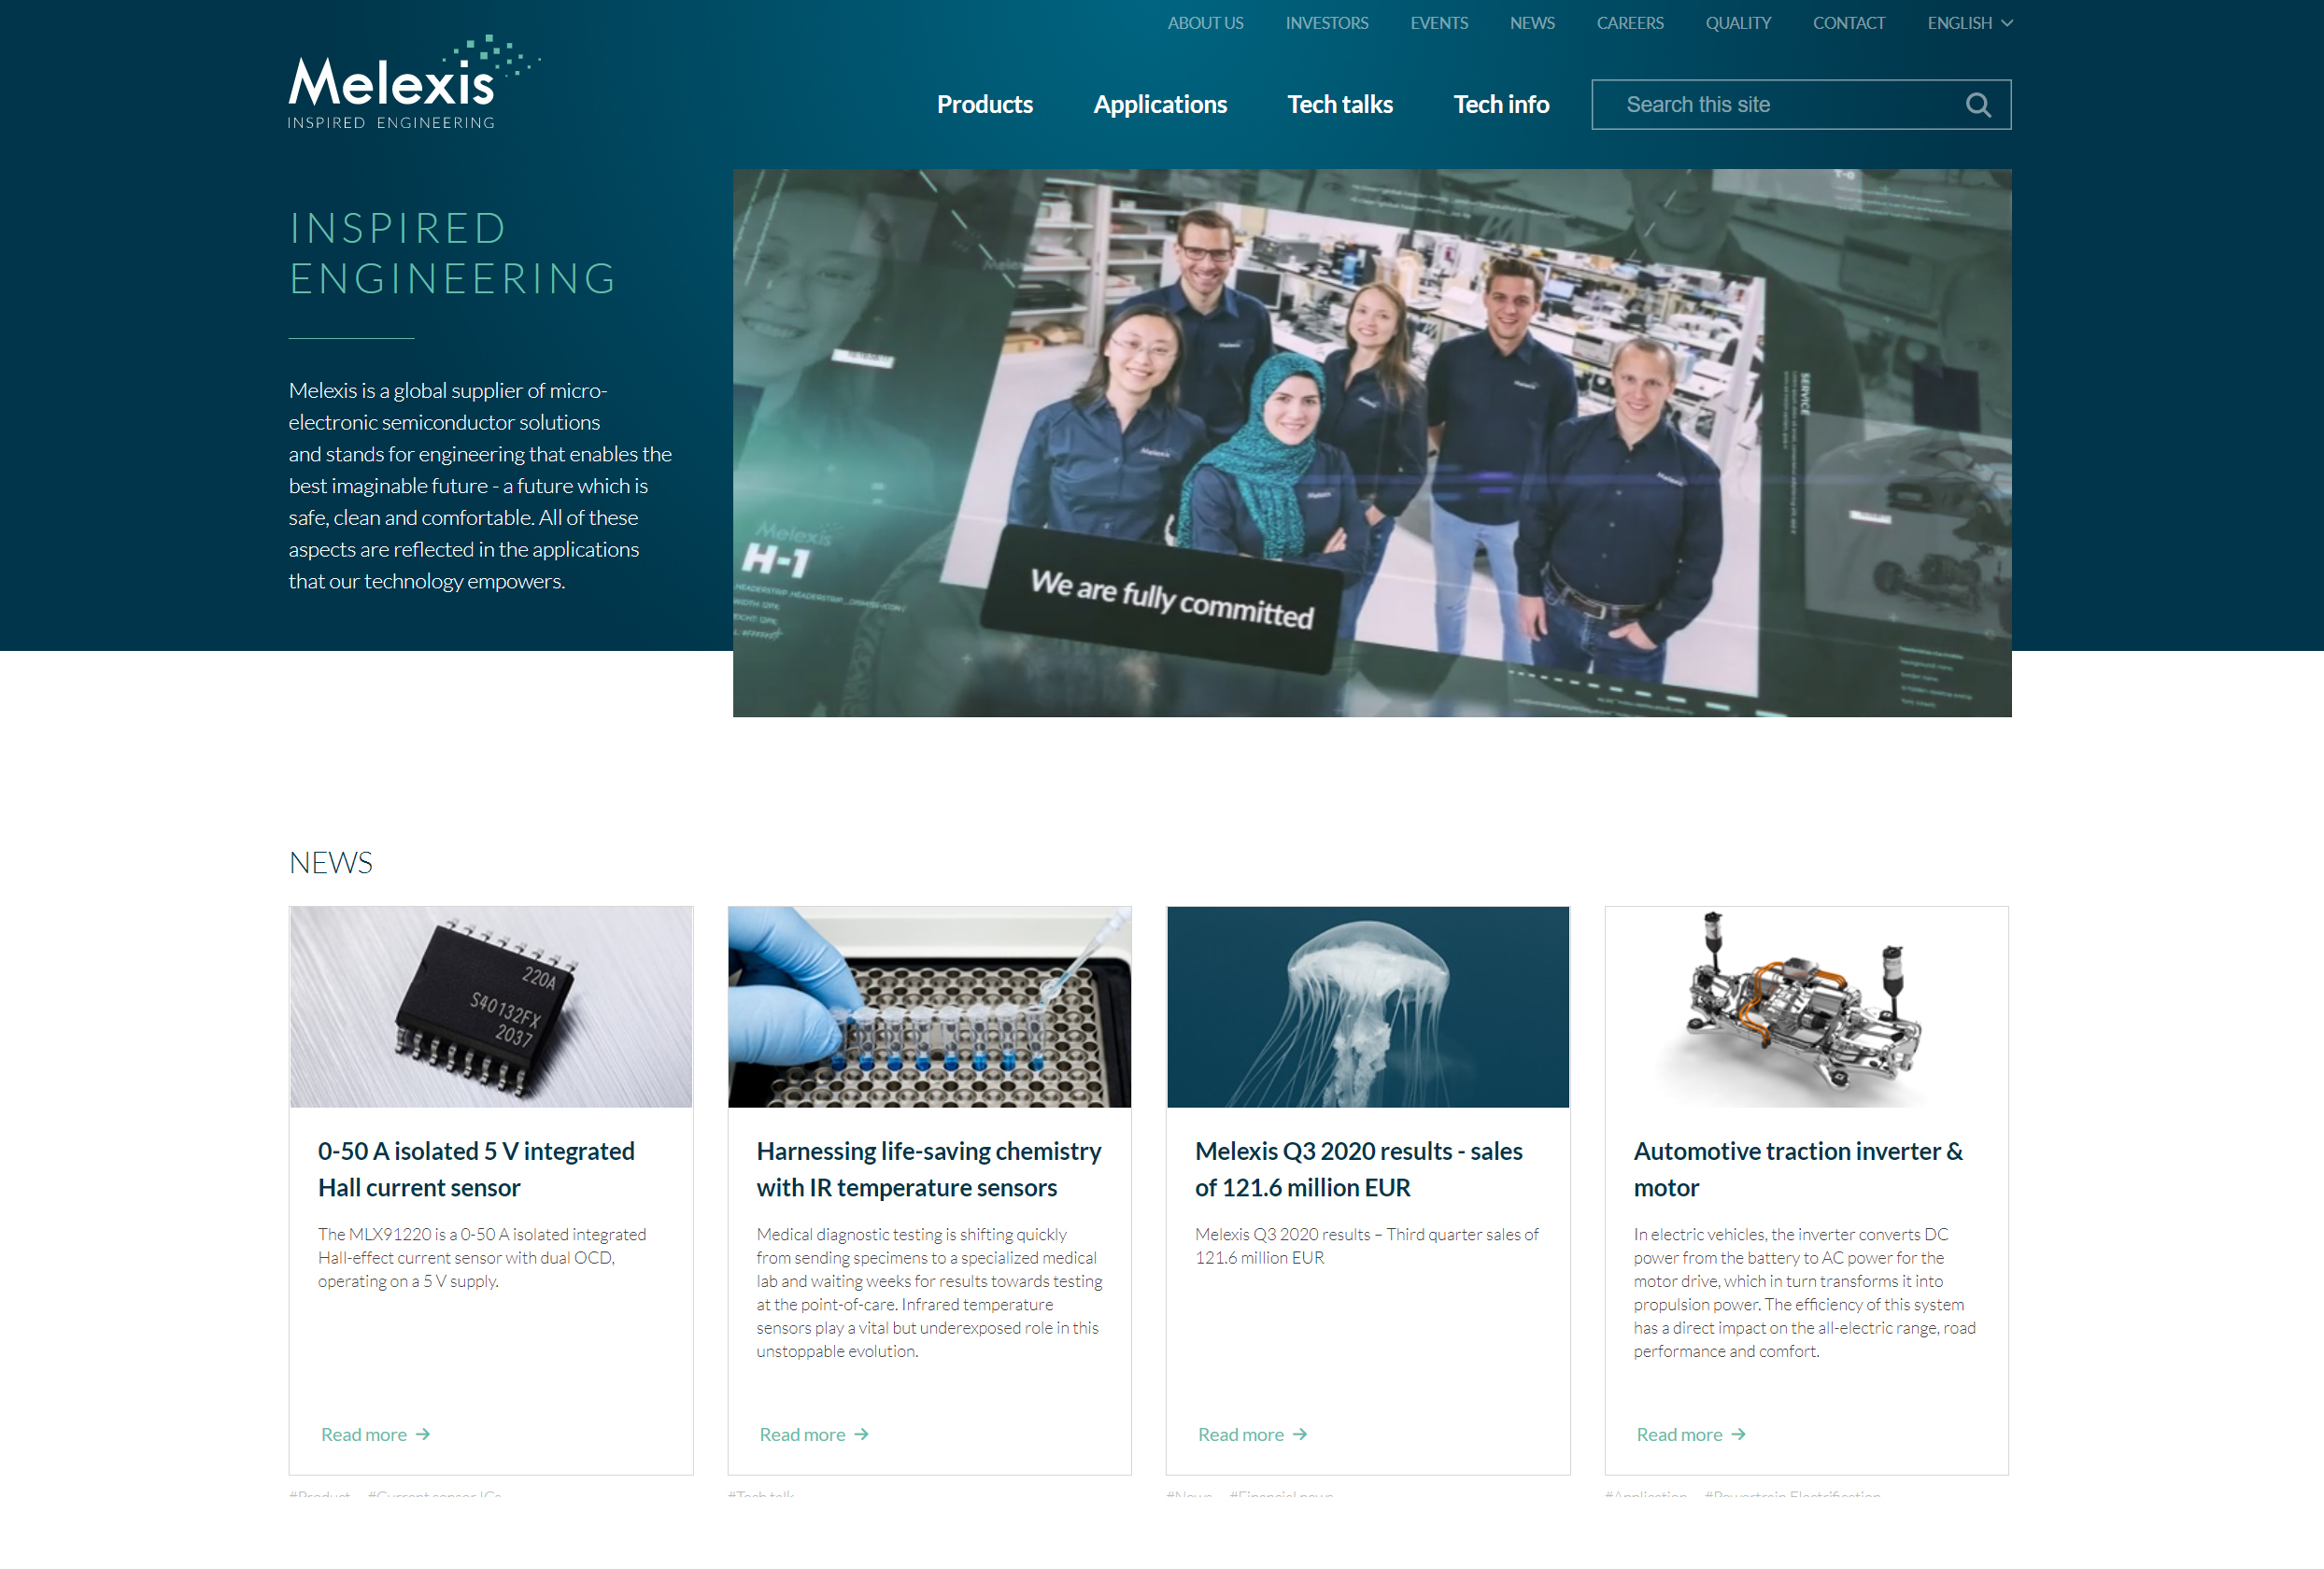 New homepage 2021 #Melexis